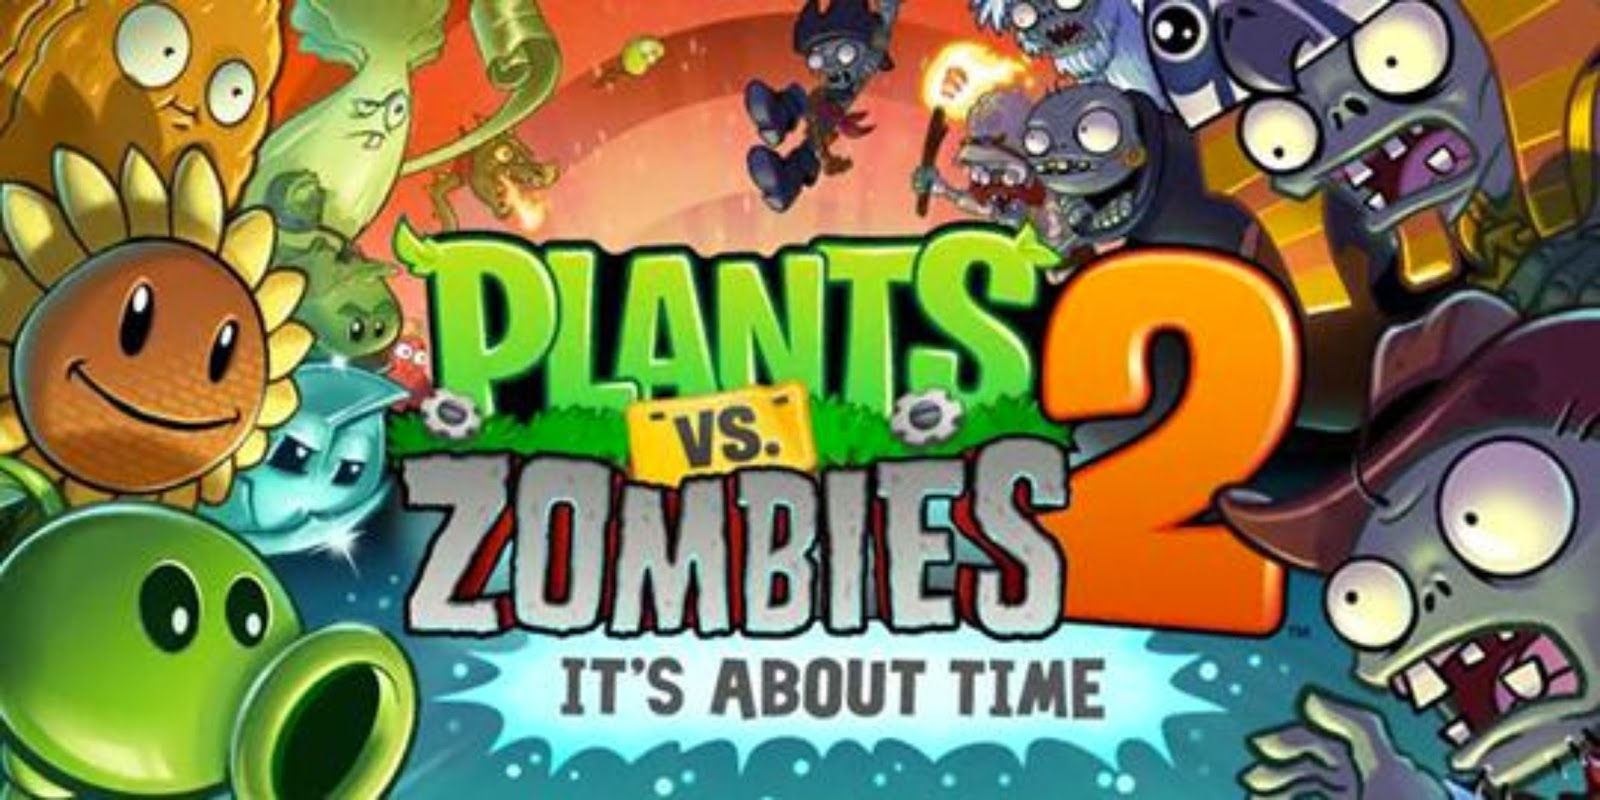 plants vs zombies 2 free online game full version